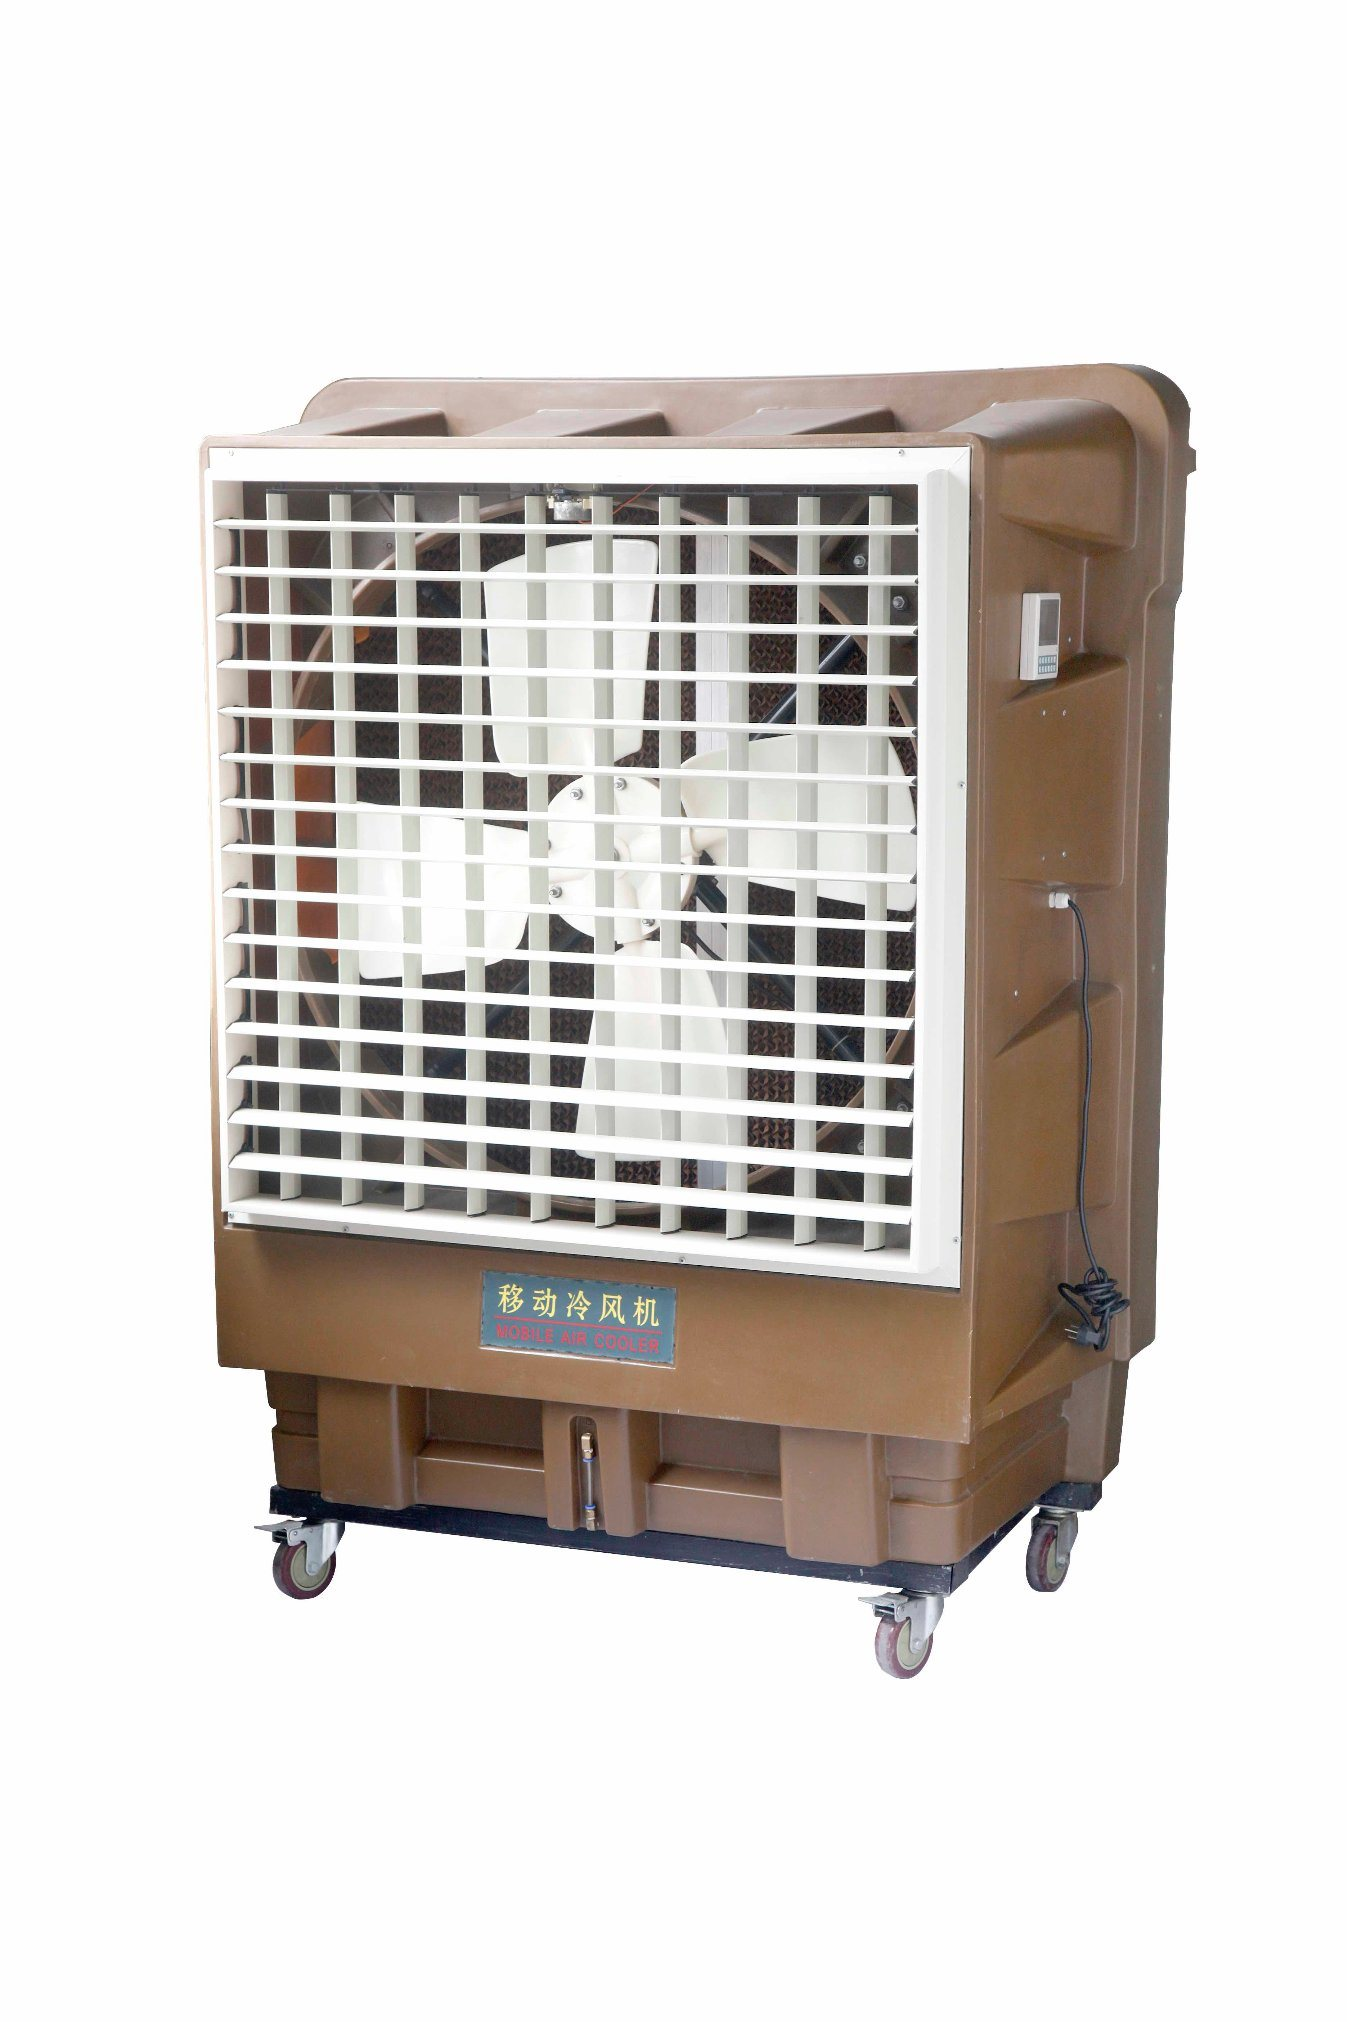 Portable air Cooler/ Evaporative air cooler/ cooling units/ air cooler